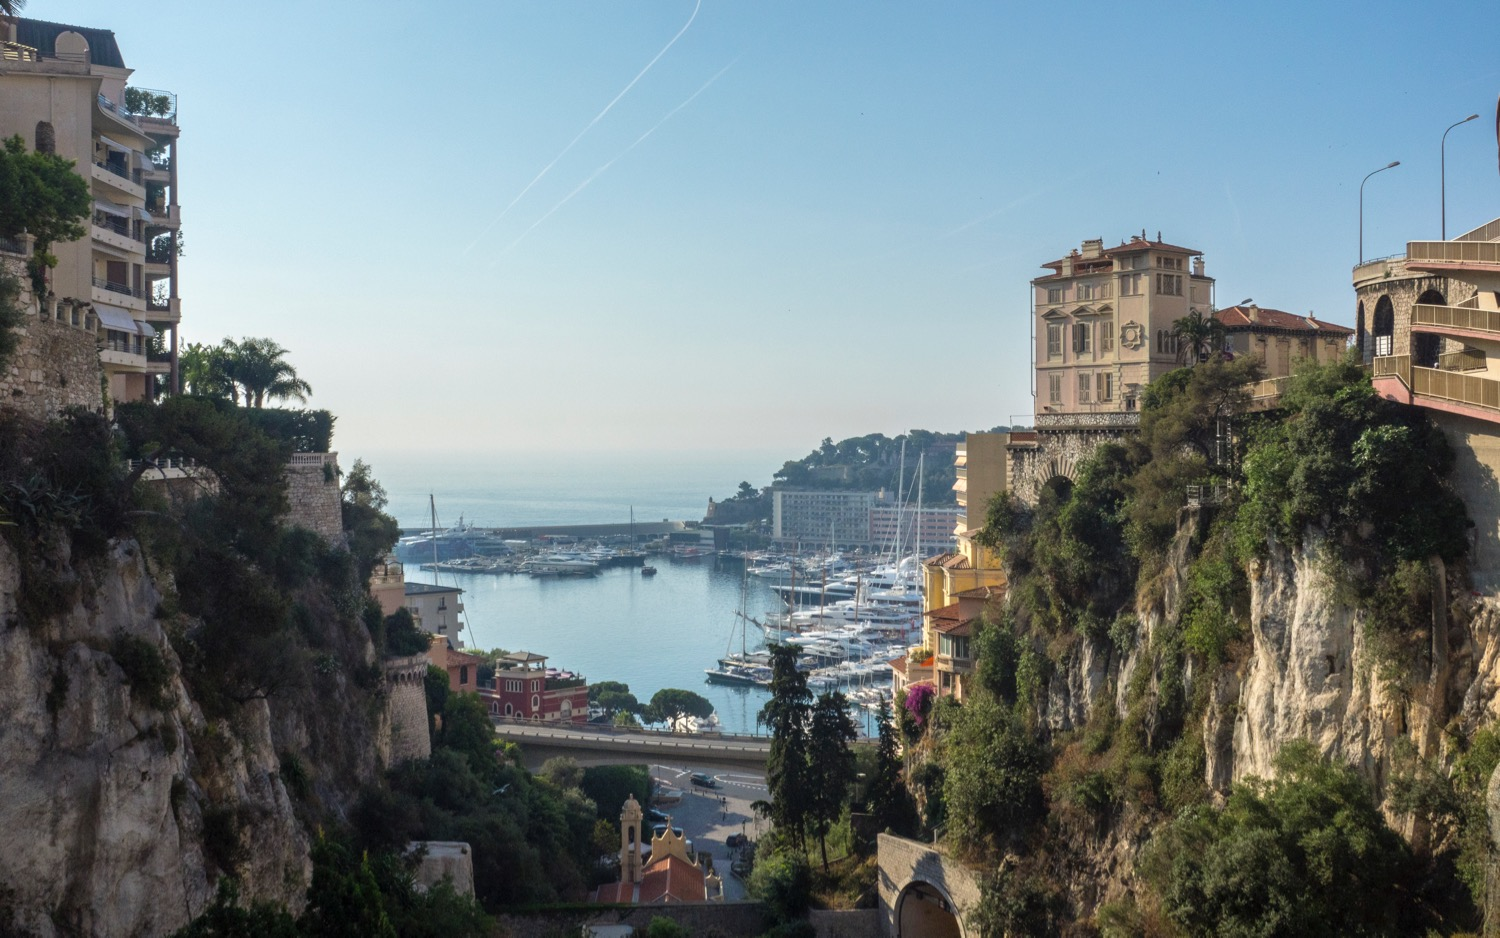 One of my first views out across Monaco - it's a beautiful city.